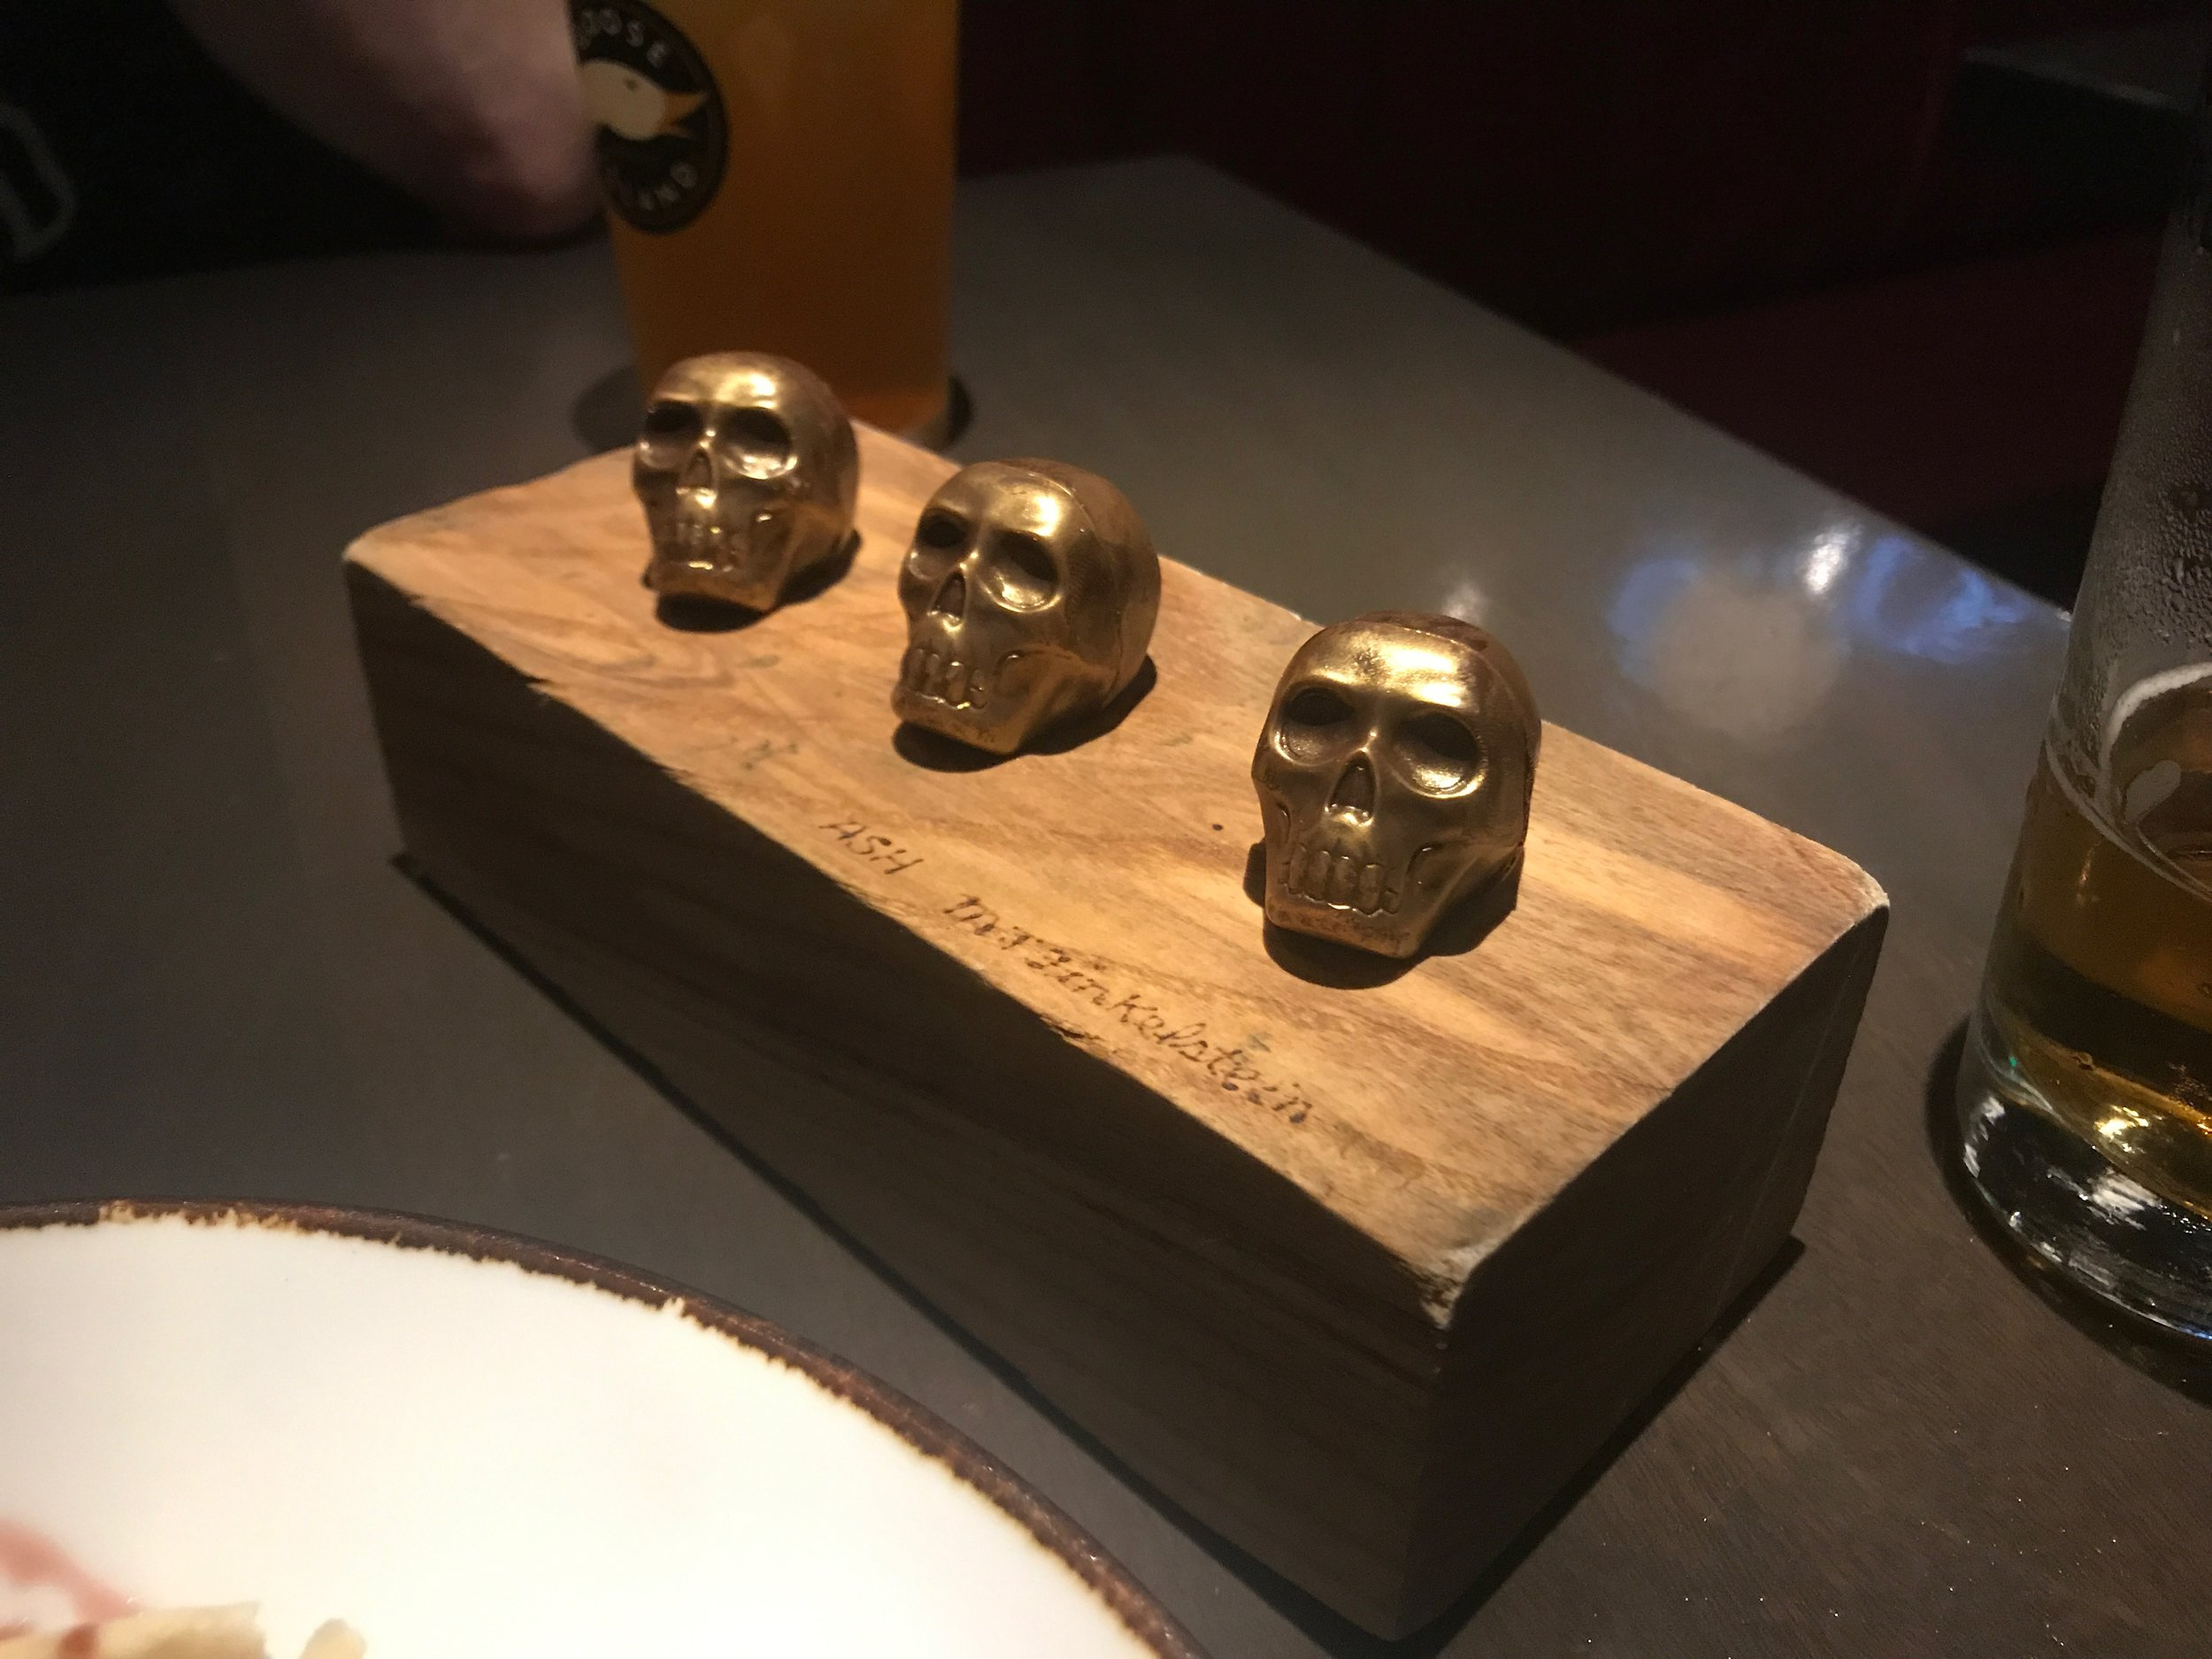 Vince Vaughn wasn't the only one crushing skulls tonight - although I'm not sure my petit four chocolates at The Carbon Bar count.)